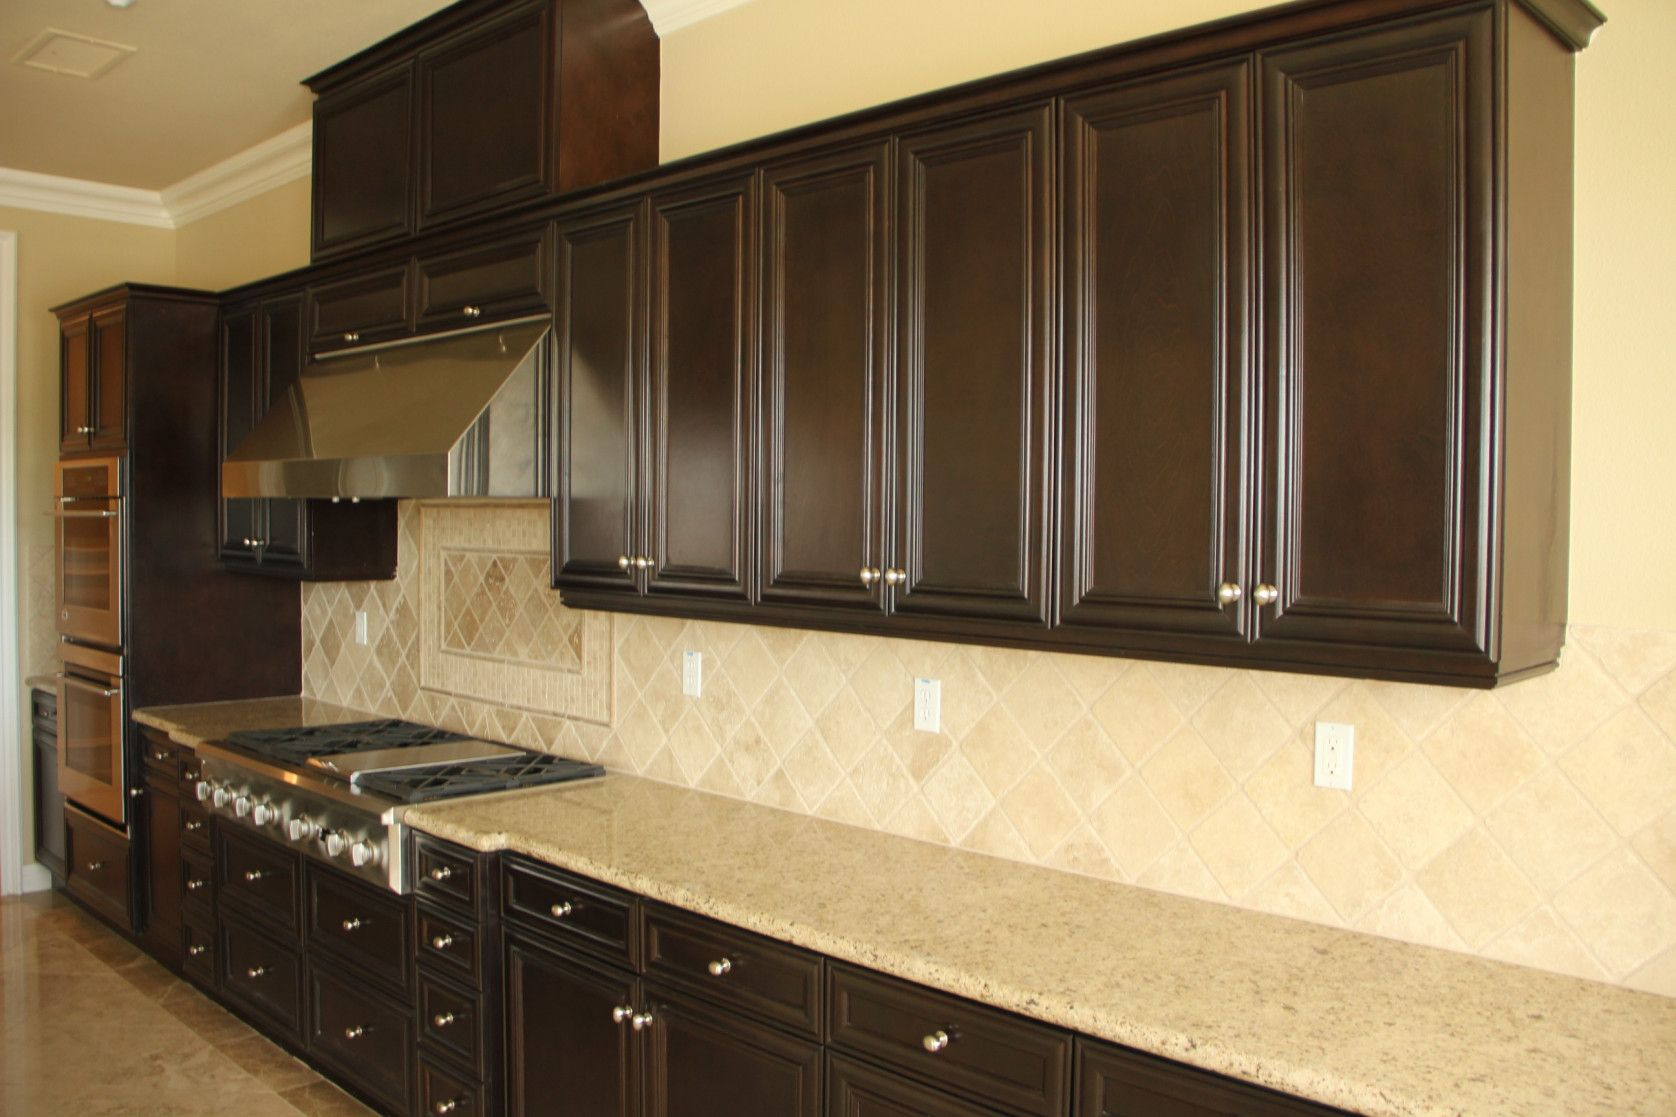 70+ Home Hardware Cabinet Pulls - Kitchen Decorating Ideas themes ...